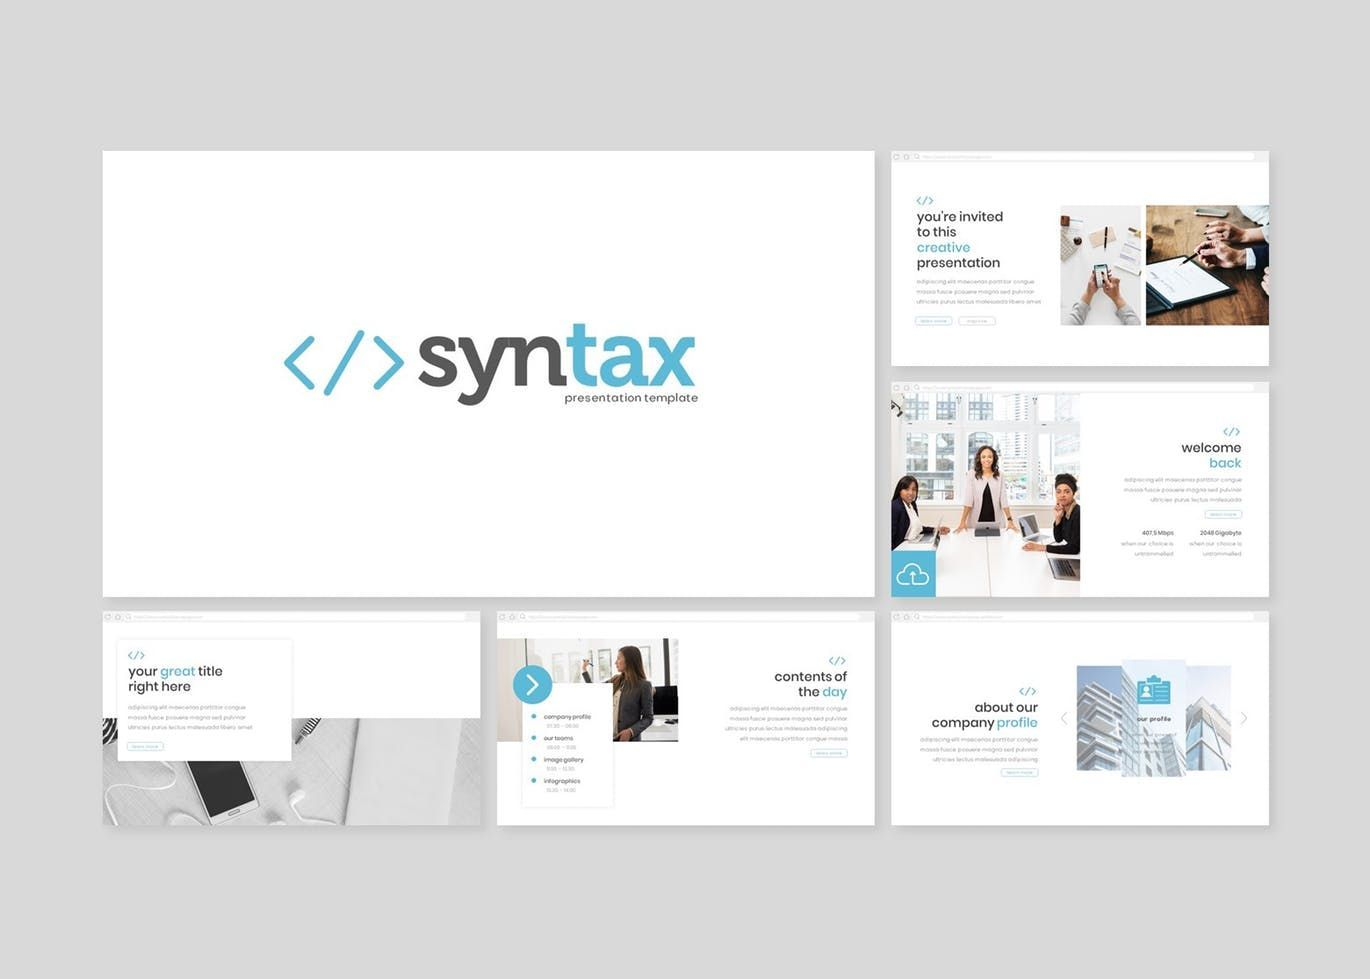 Syntax - PowerPoint Template, Slide 2, 08307, Presentation Templates — PoweredTemplate.com